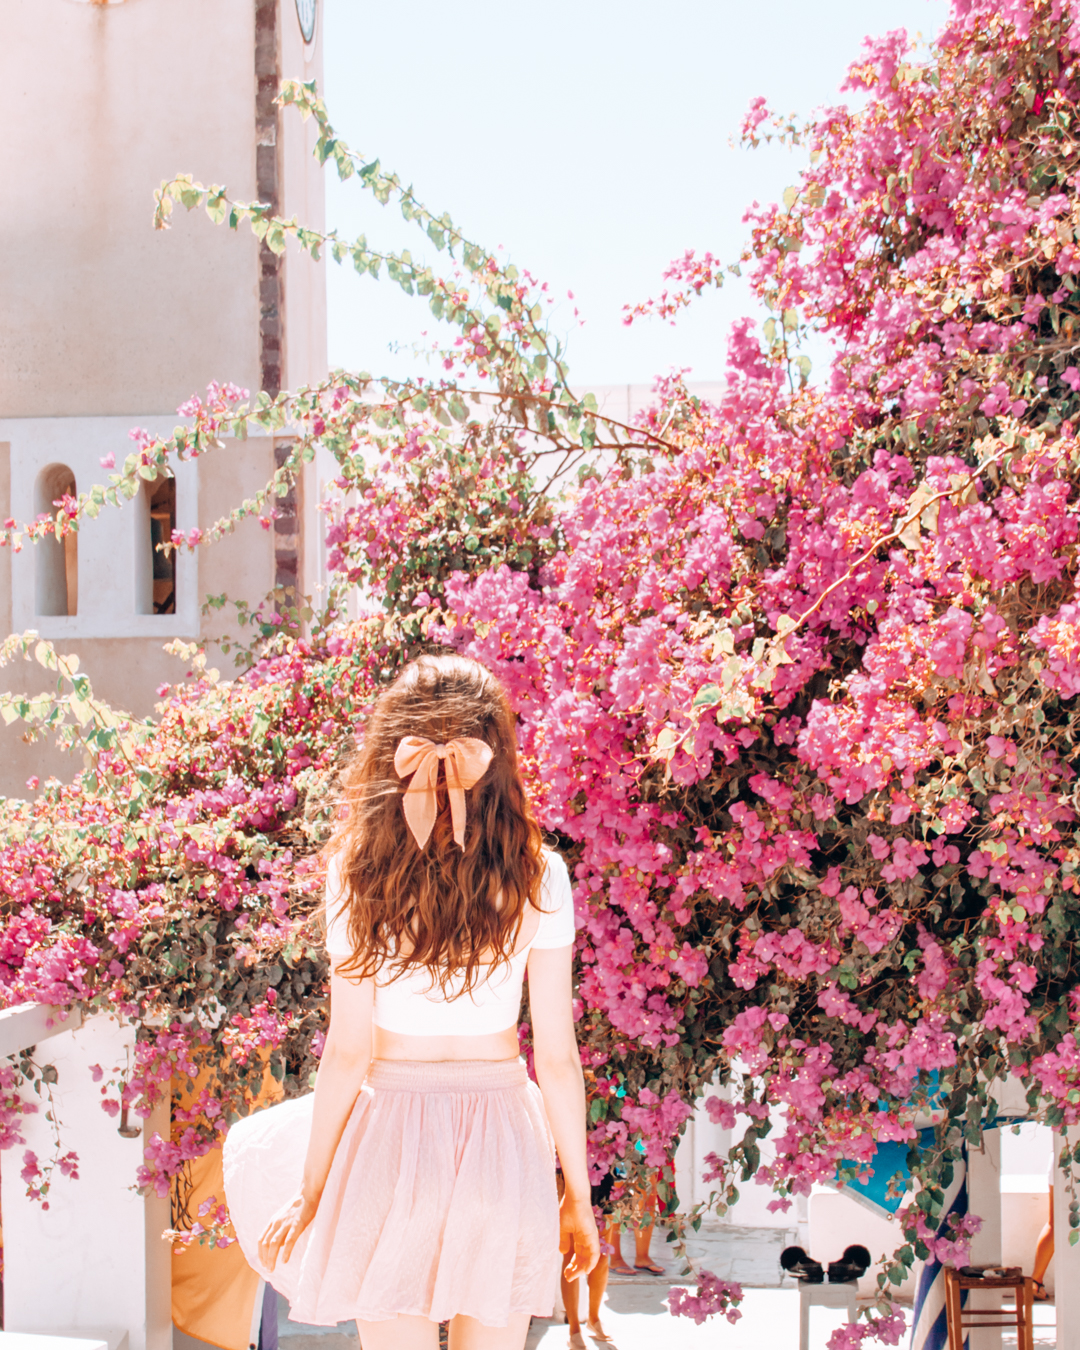 Girl looking at pink flowers